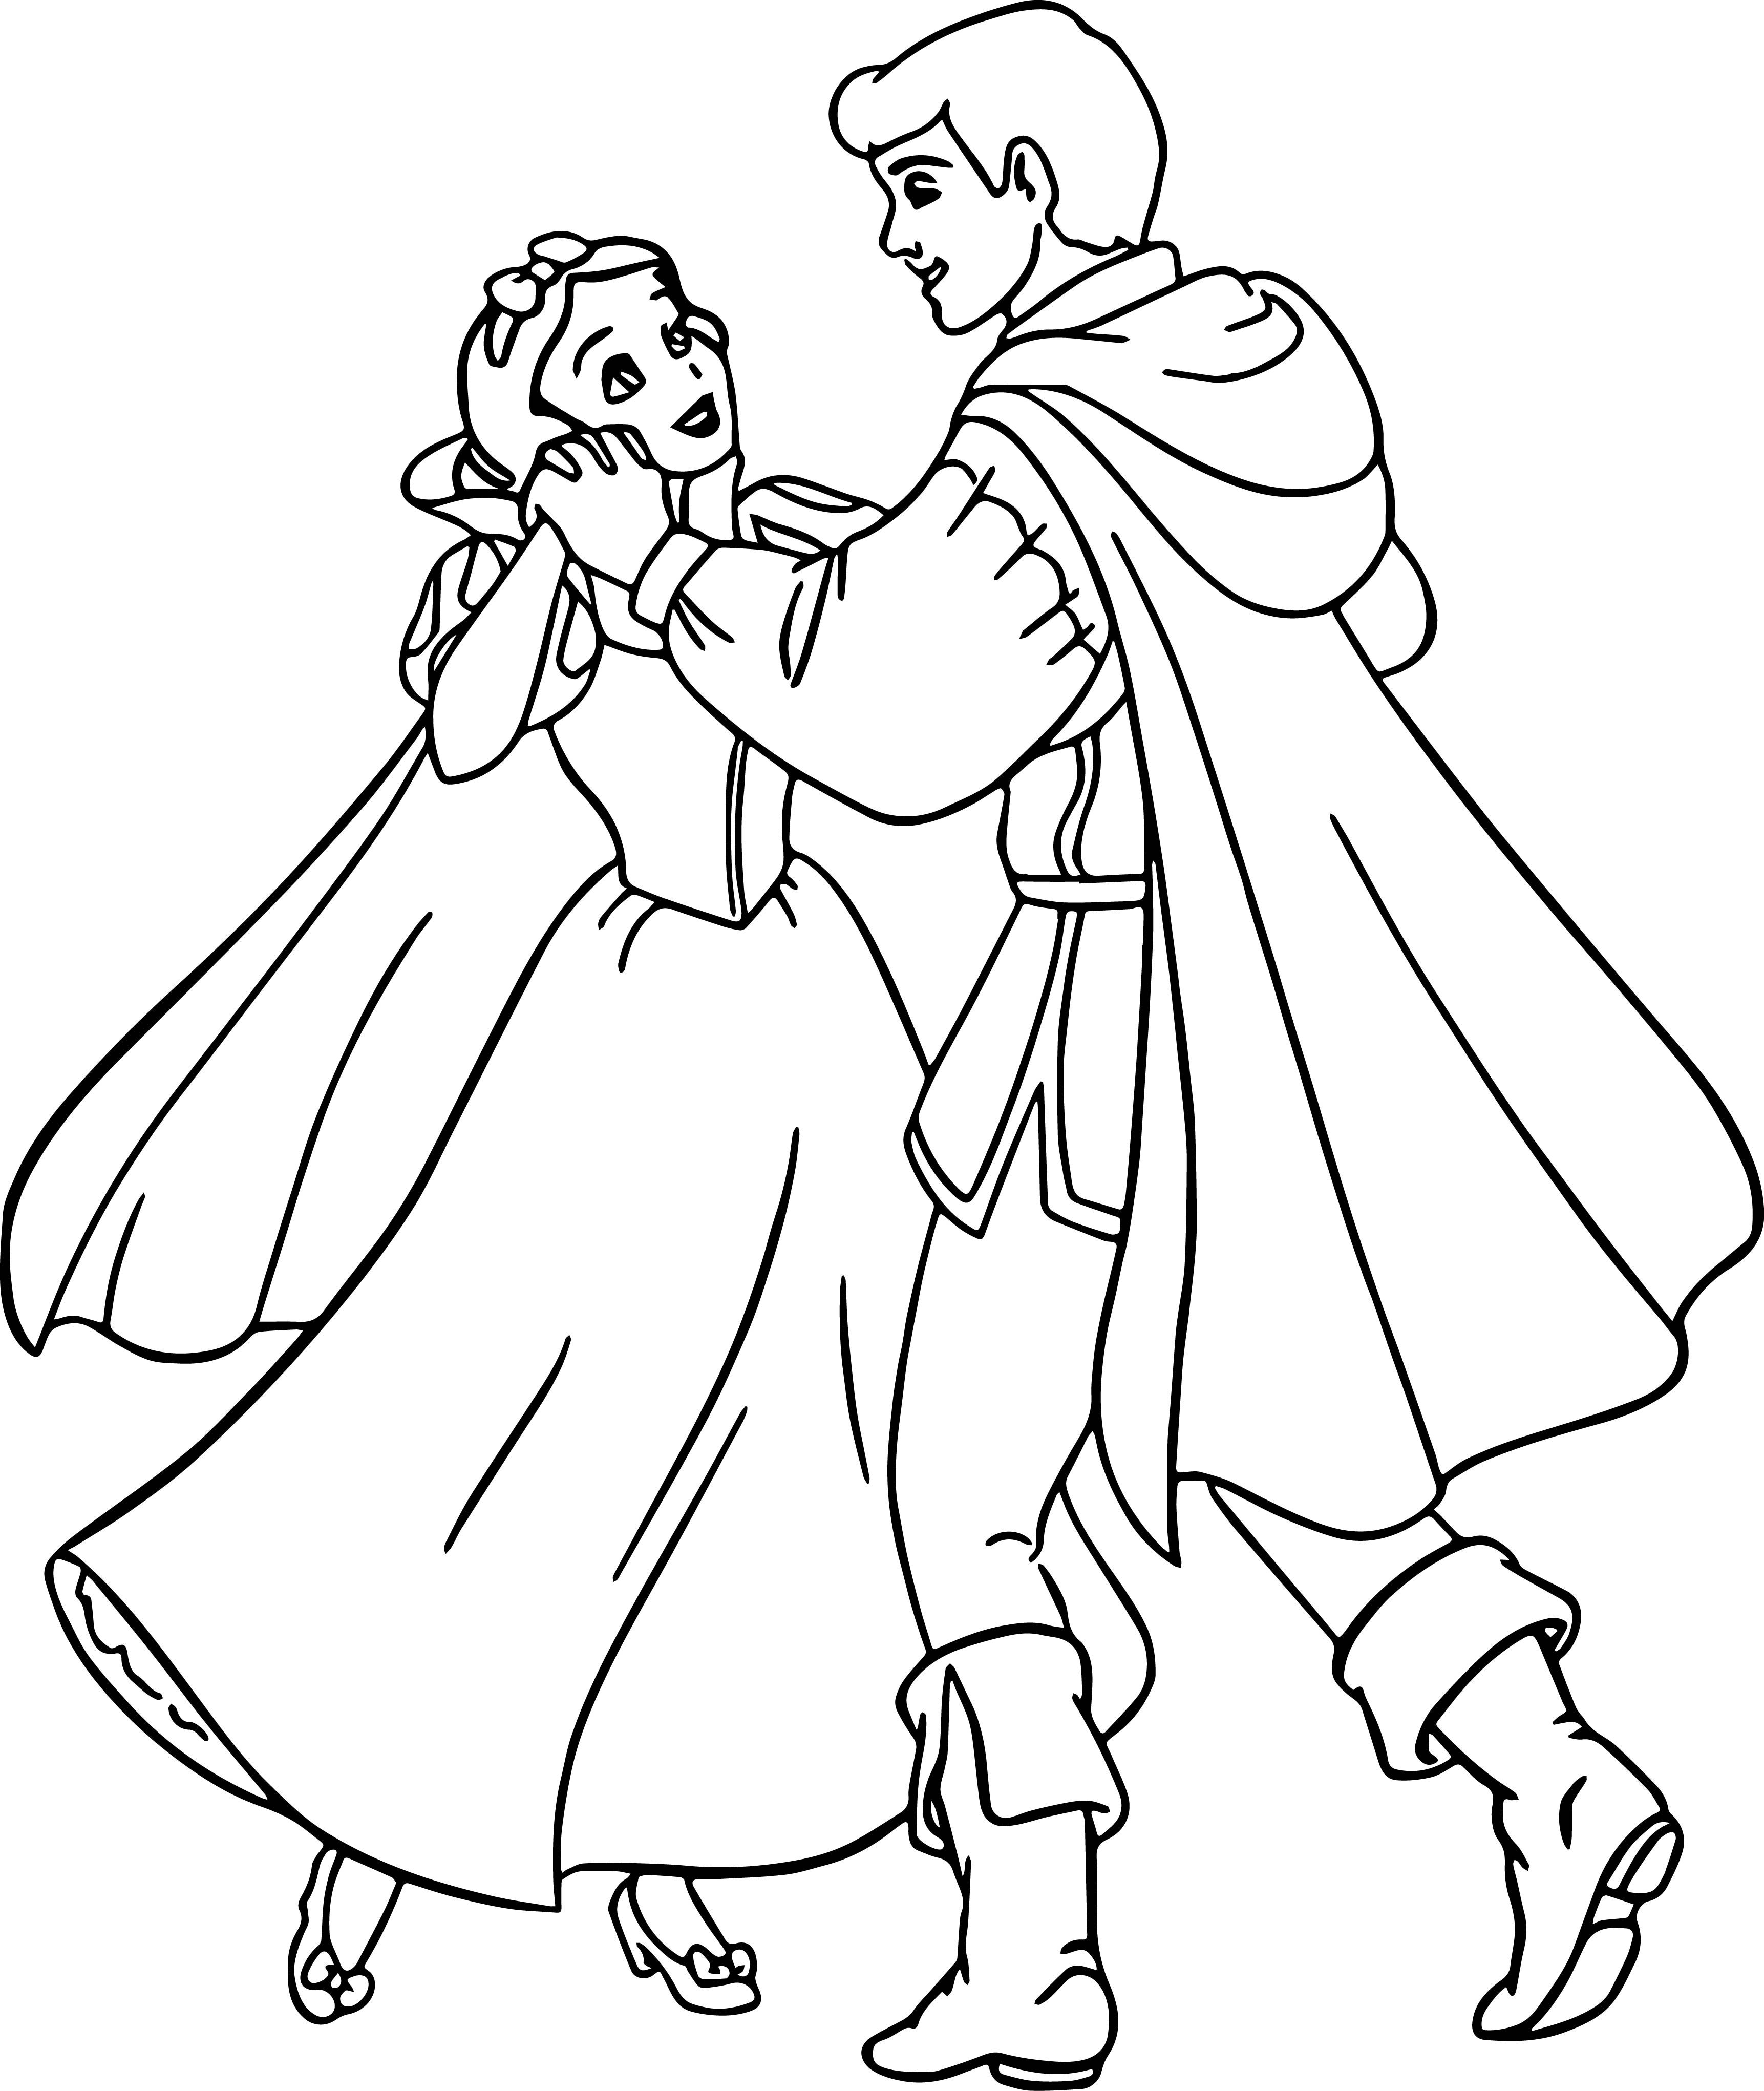 Snow White Coloring Pages Wecoloringpage Pinterest Snow White